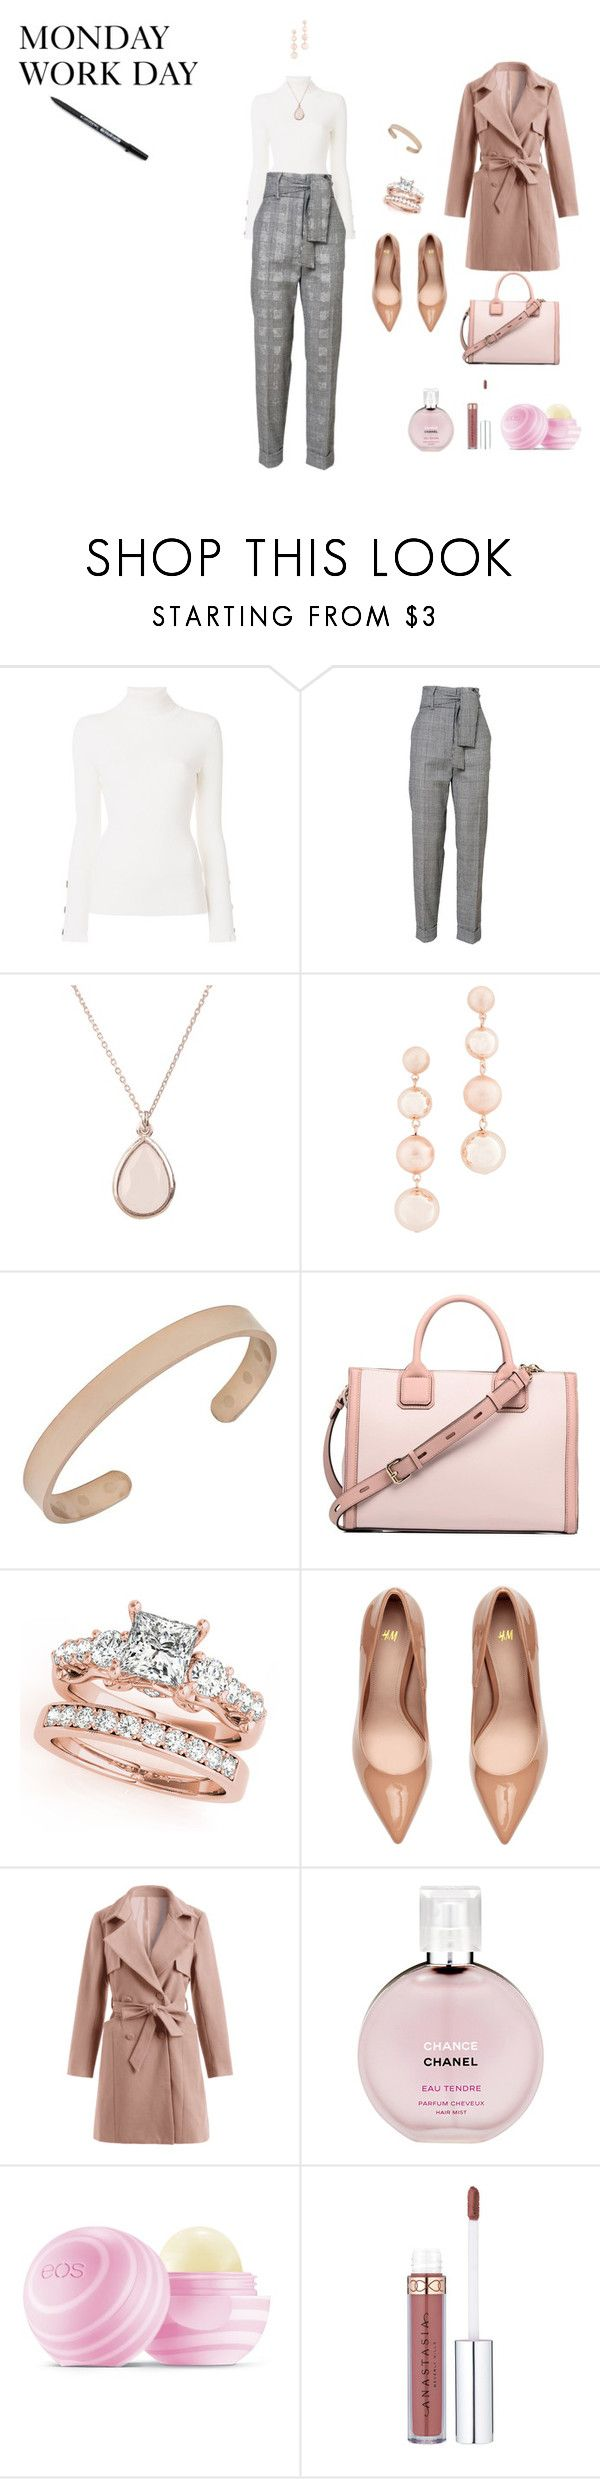 """""""MONDAY WORK OUTFIT 11/24/17"""" by rebeccadavisblogger on Polyvore featuring See by Chloé, Rebecca Minkoff, Chanel and Eos"""